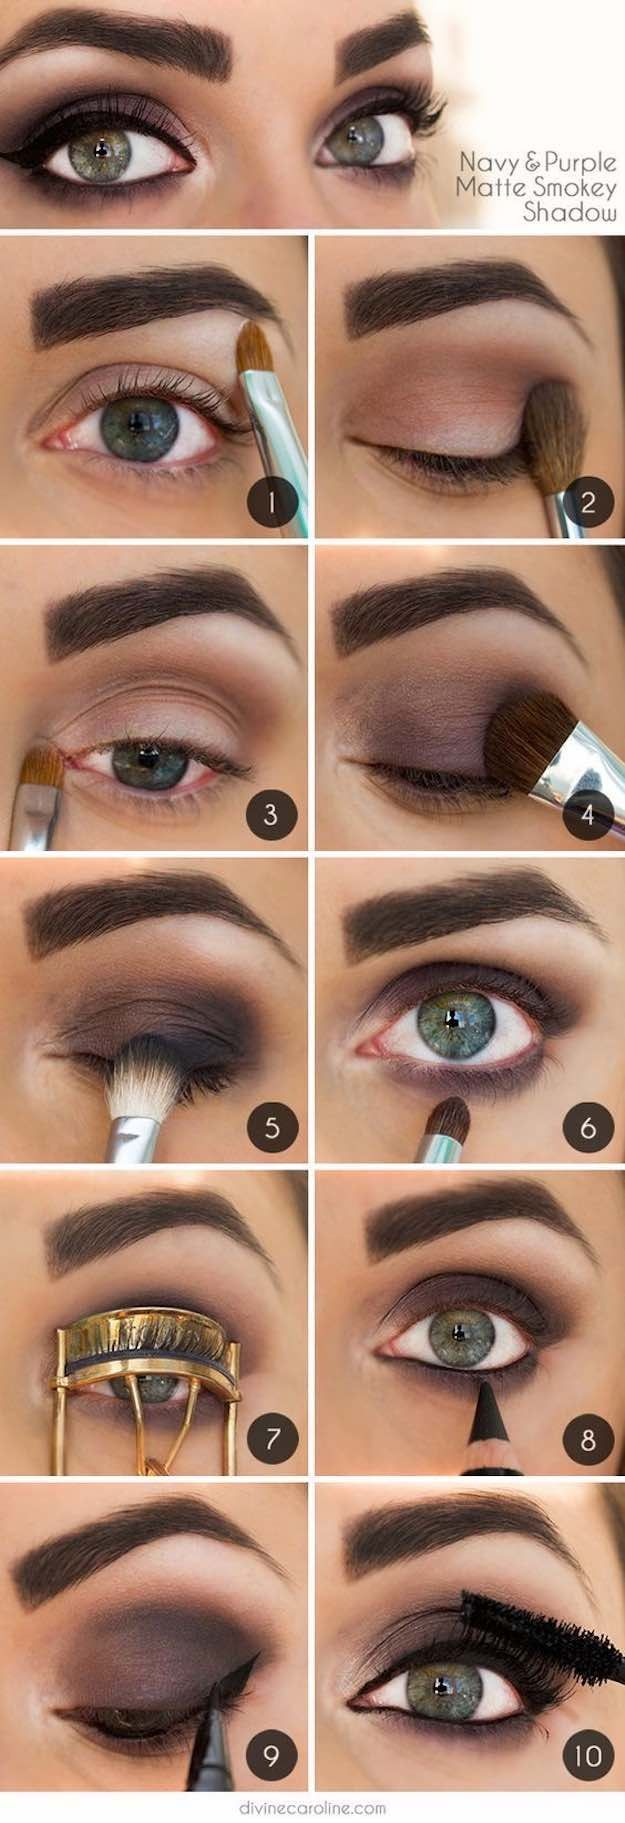 Makeup Tutorials for Green Eyes -Navy and Purple Matte Smokey Shadow -Easy Eyesh...